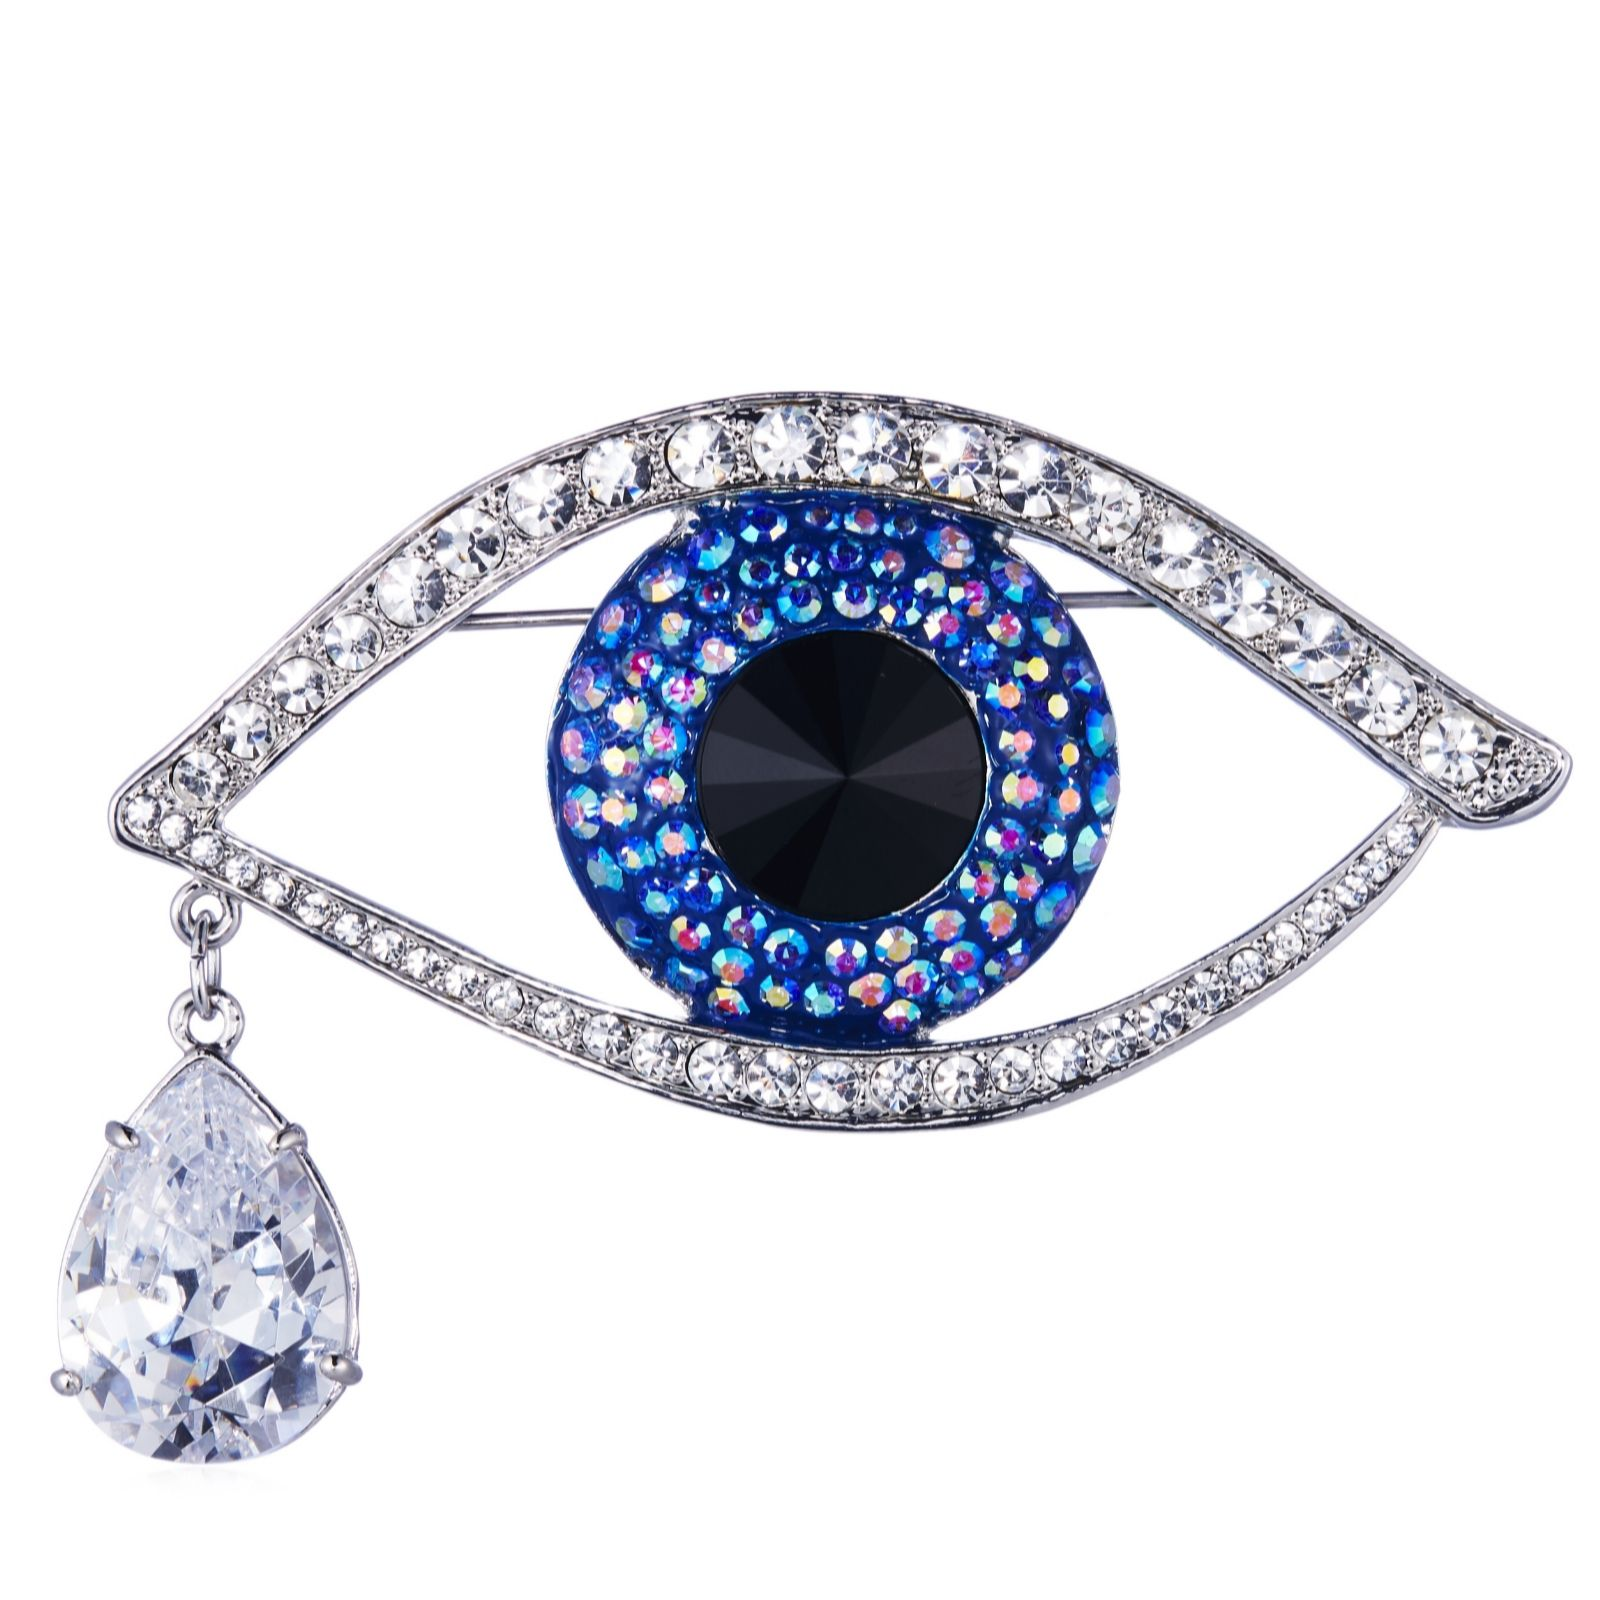 f0769b50d Butler & Wilson Large Crystal Eye Brooch - Page 1 - QVC UK